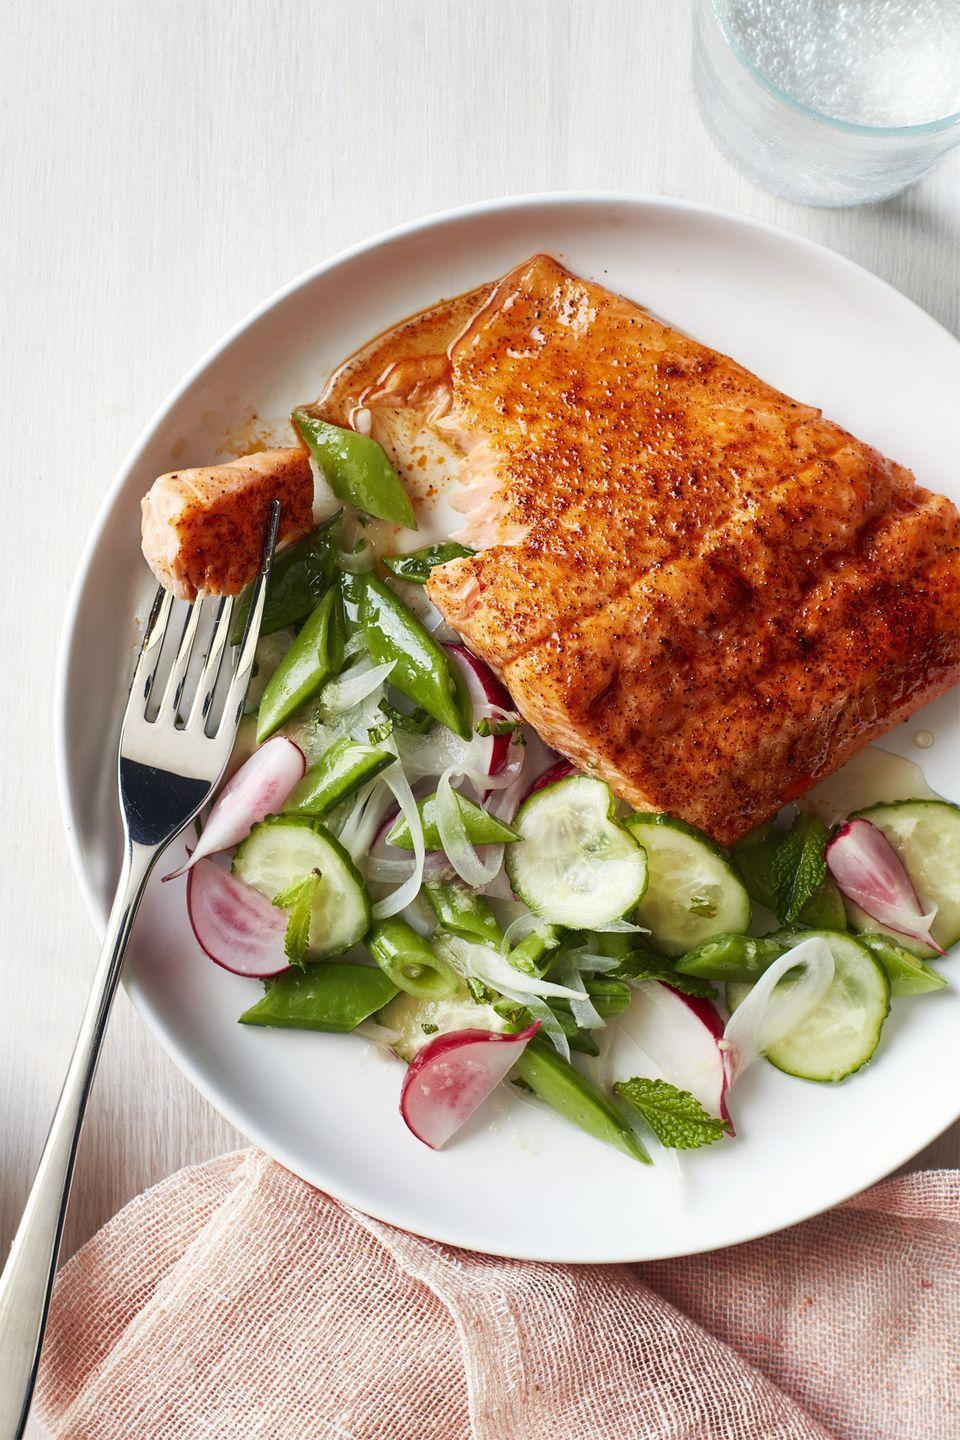 """<p>A light radish and snap pea salad balances out the smoky salmon. And it only takes 20 minutes!</p><p><em><a href=""""https://www.womansday.com/food-recipes/food-drinks/recipes/a58512/roasted-blackened-salmon-snap-pea-salad-recipe/"""" rel=""""nofollow noopener"""" target=""""_blank"""" data-ylk=""""slk:Get the Roasted Blackened Salmon with Snap Pea Salad recipe."""" class=""""link rapid-noclick-resp"""">Get the Roasted Blackened Salmon with Snap Pea Salad recipe.</a></em></p>"""